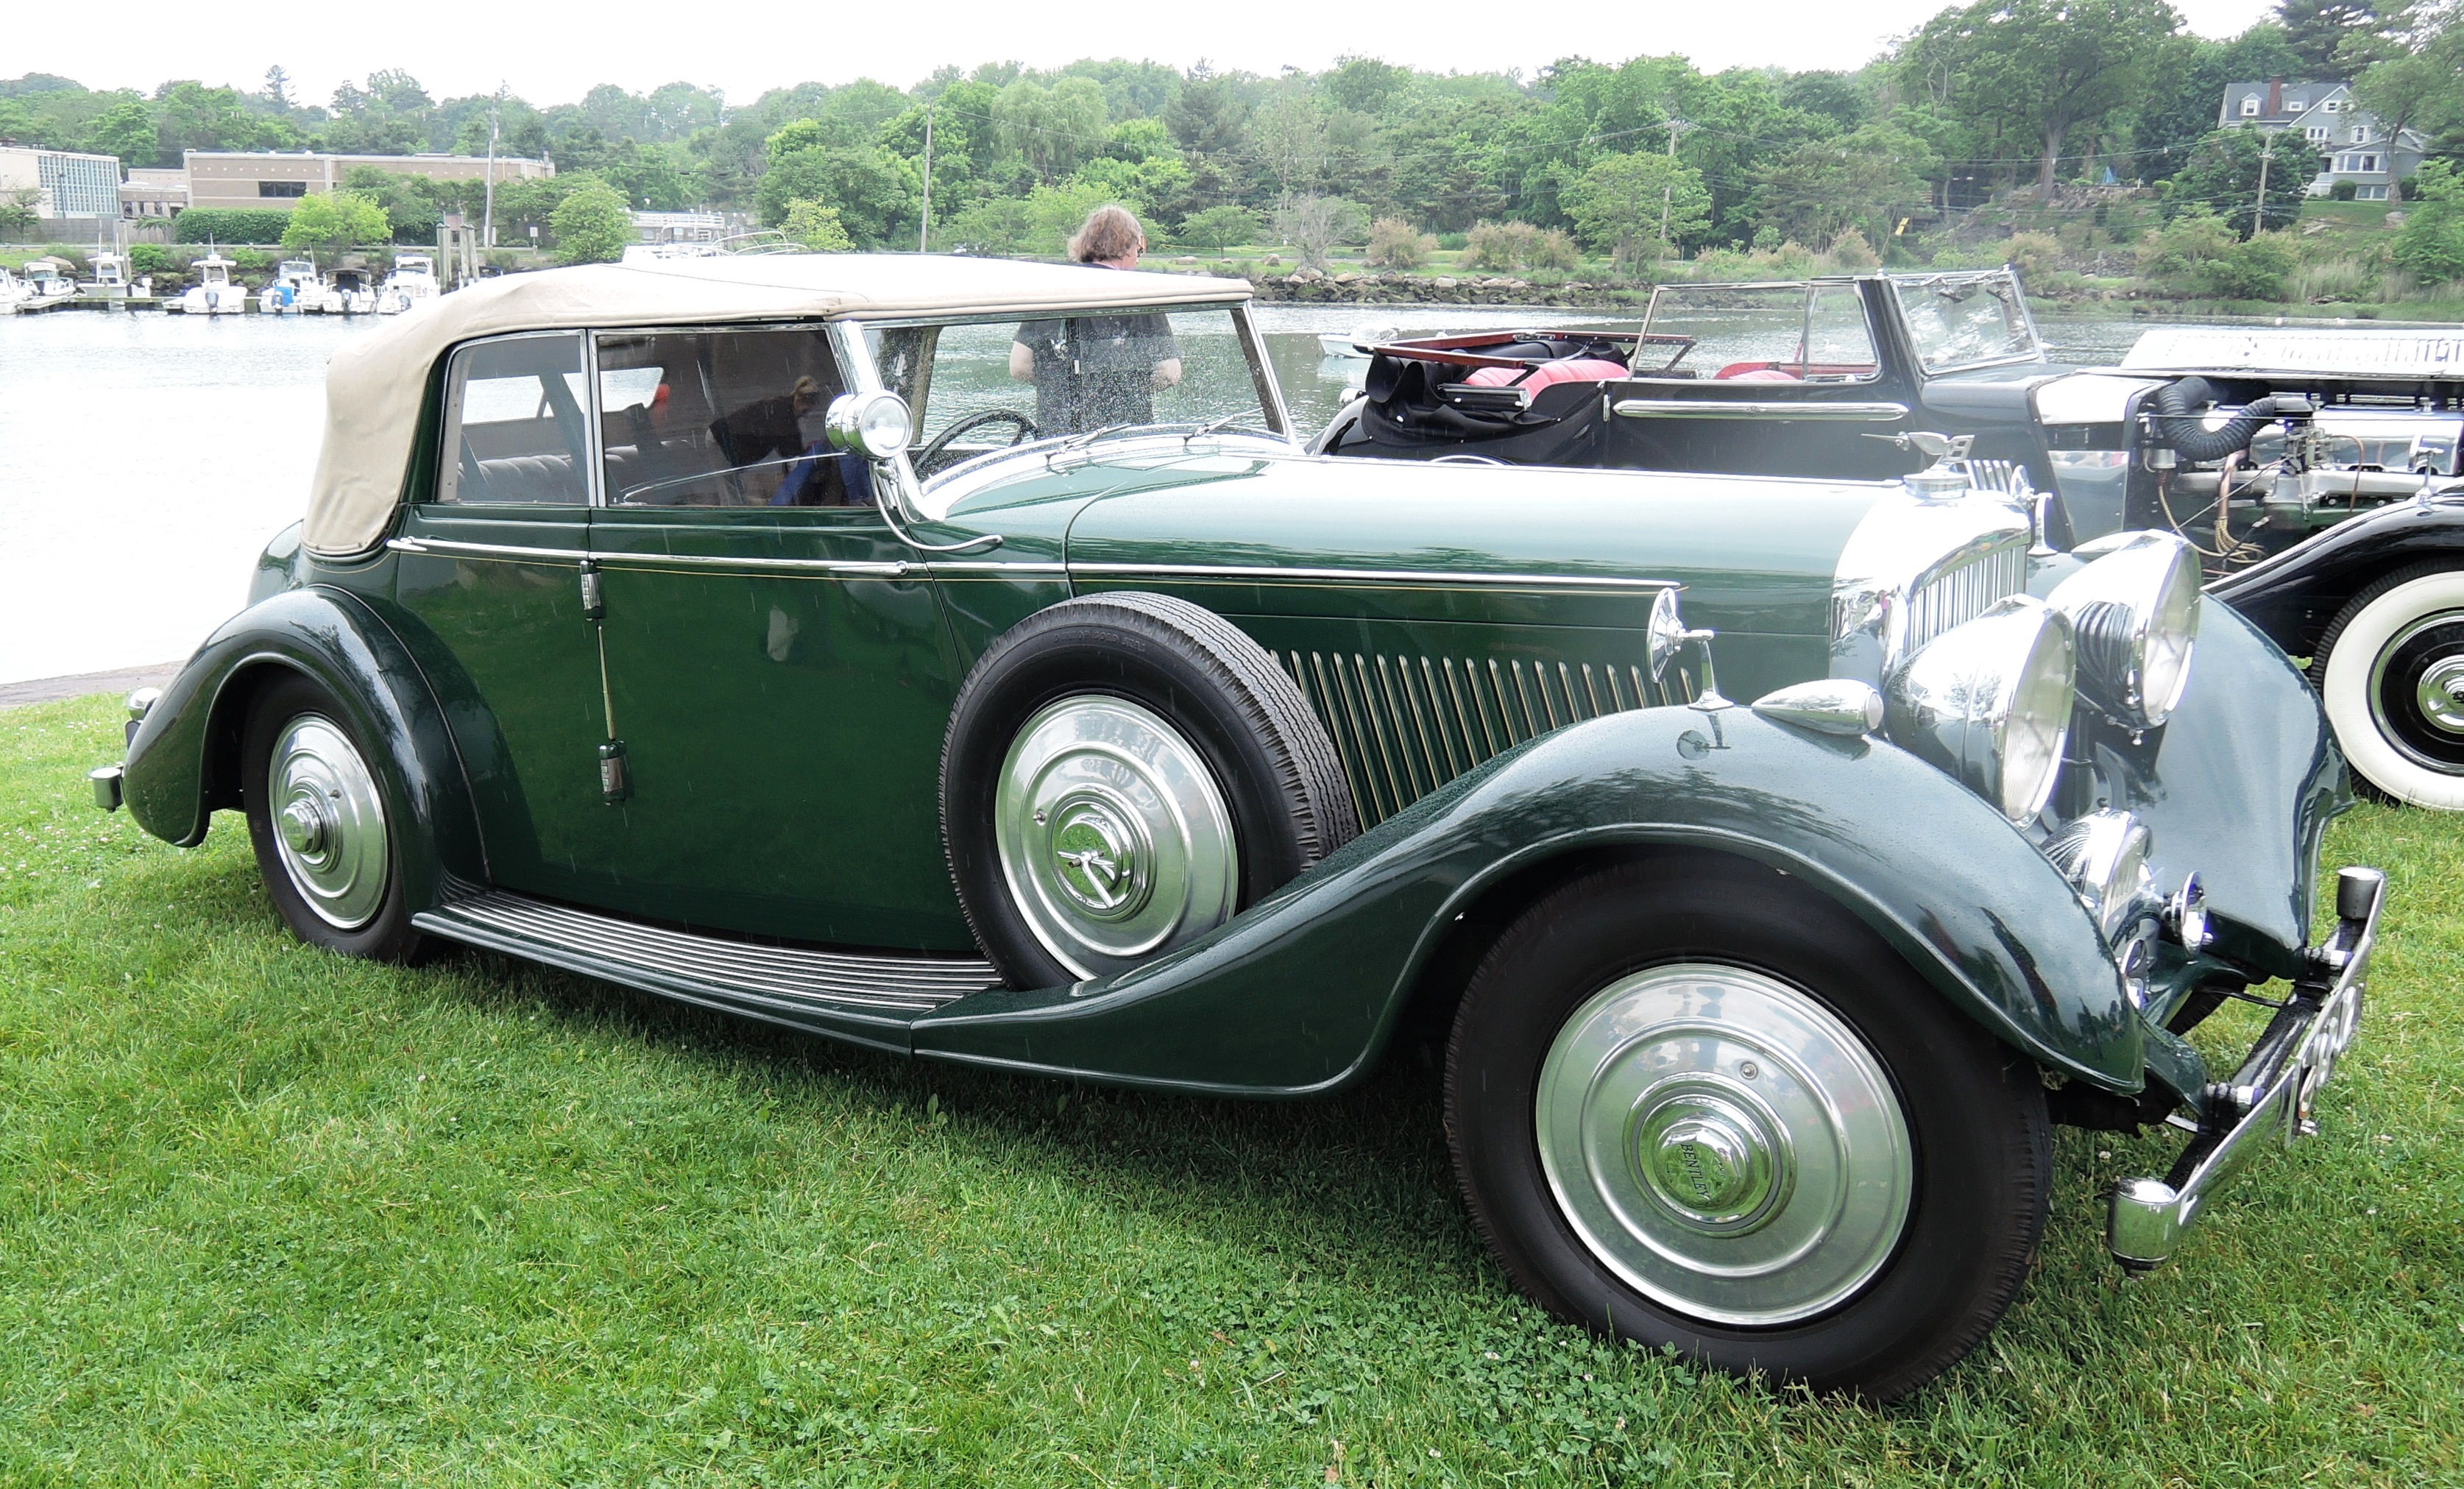 green 1937 Bentley 4 1/4 Litre All-weather Phaeton - Greenwich concours d'elegance